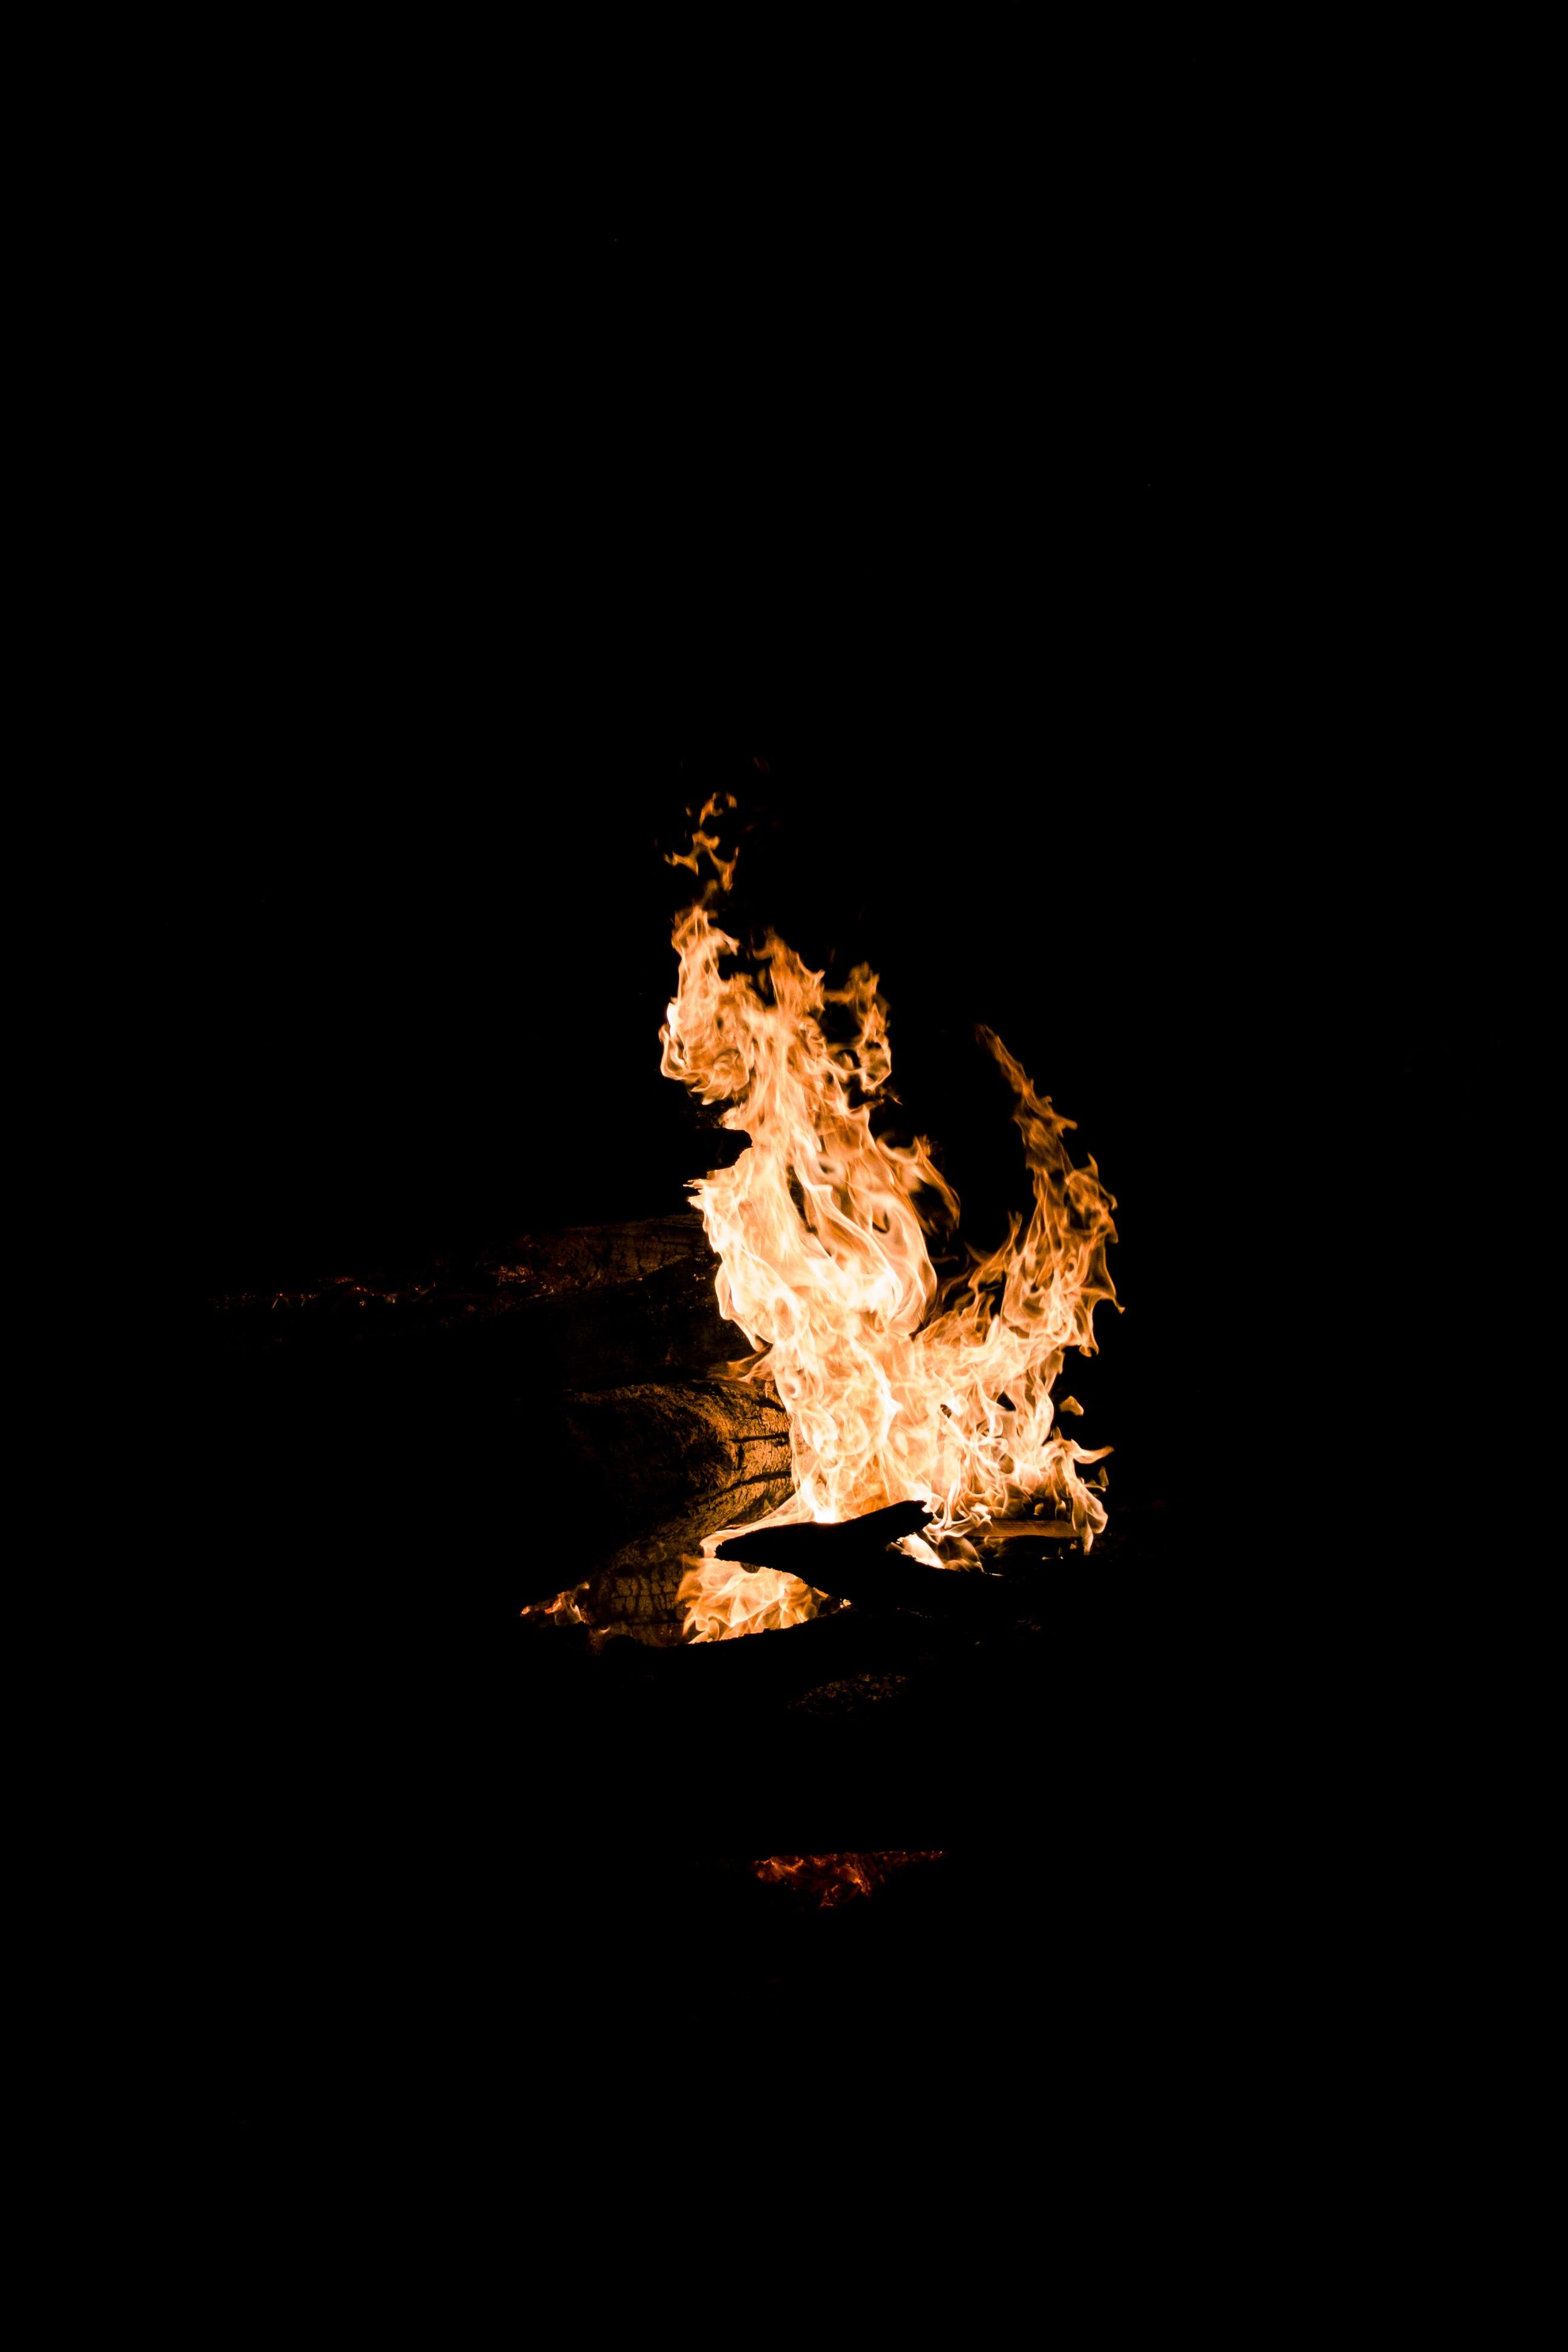 100 Wallpapers Free Download Images On Unsplash Witch Pictures Black Magic Love Spells Flames